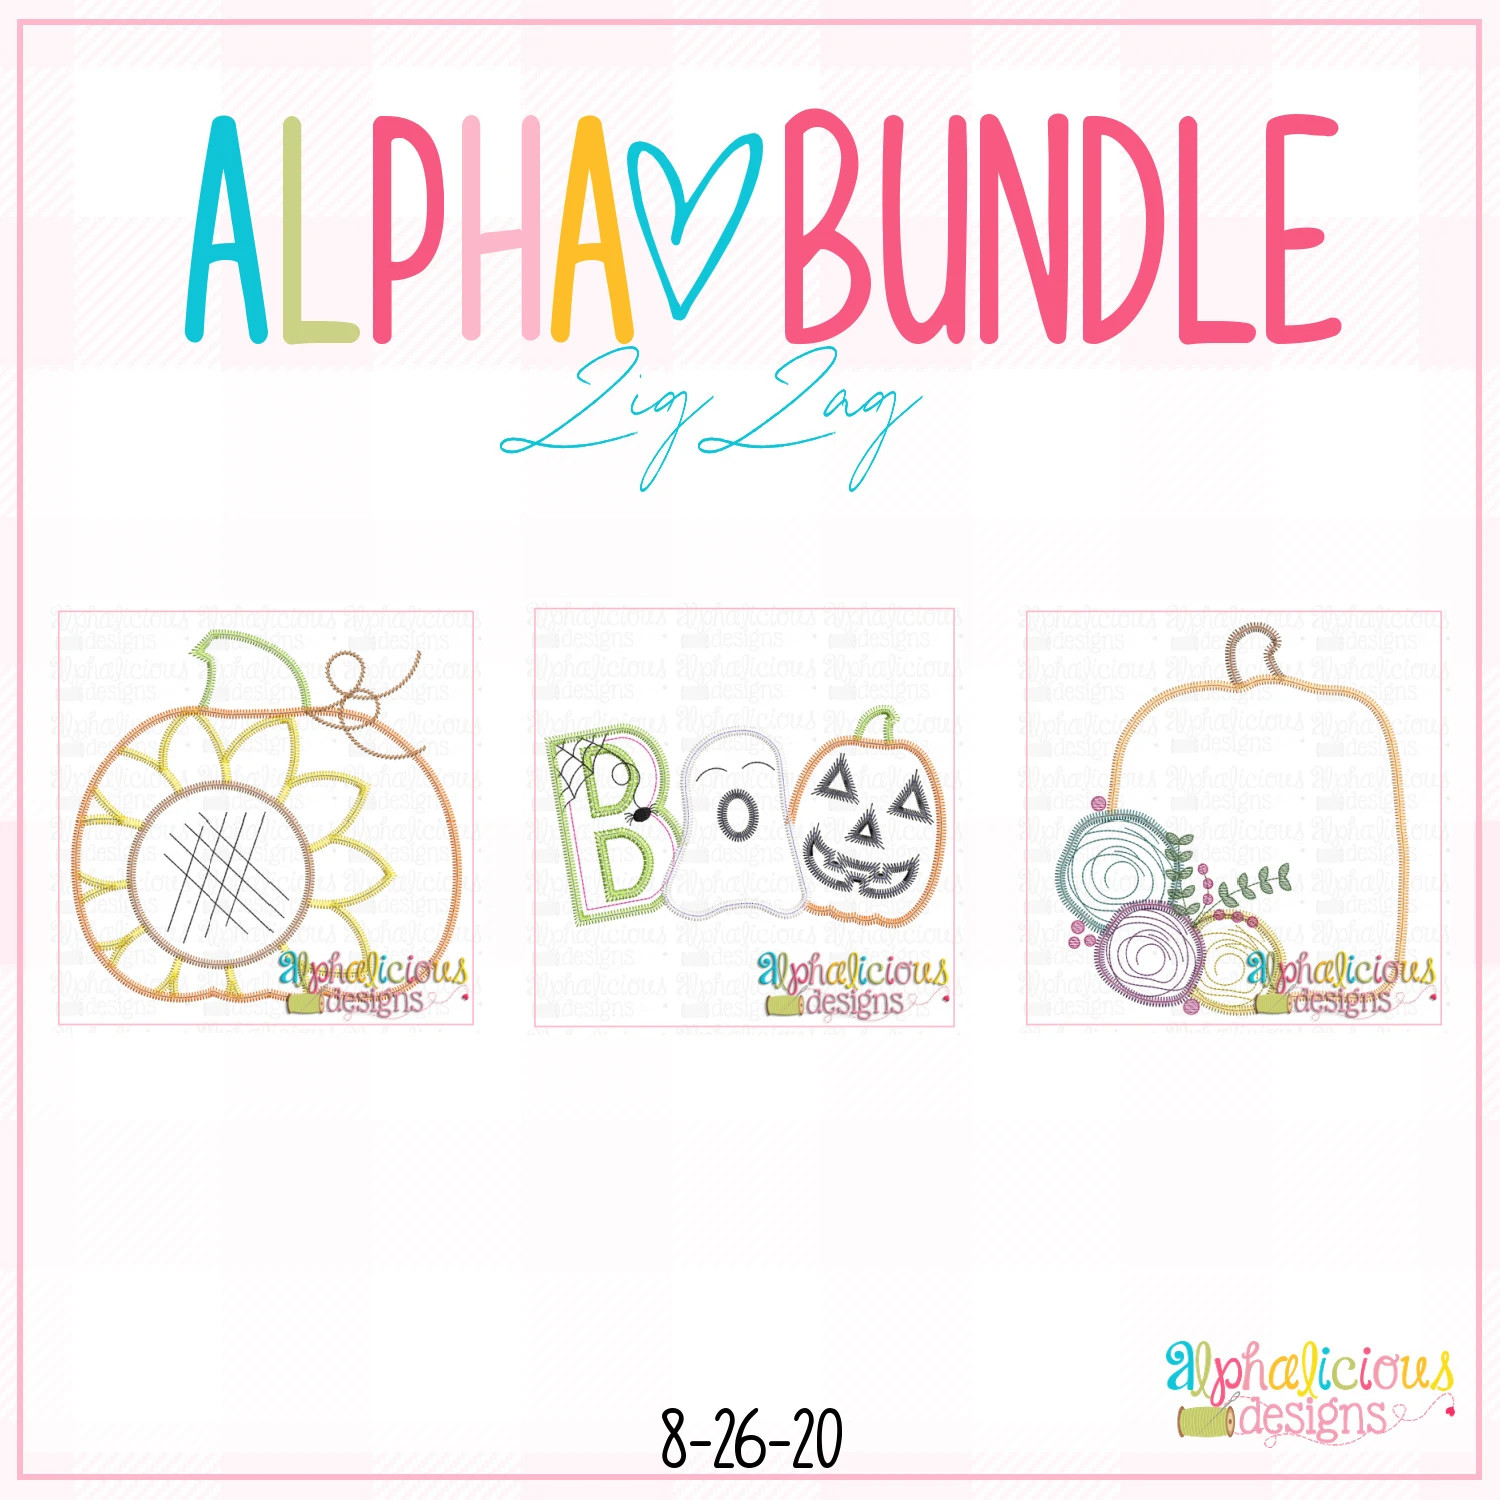 ALPHA BUNDLE-8/26/20 Release-ZigZag Stitch